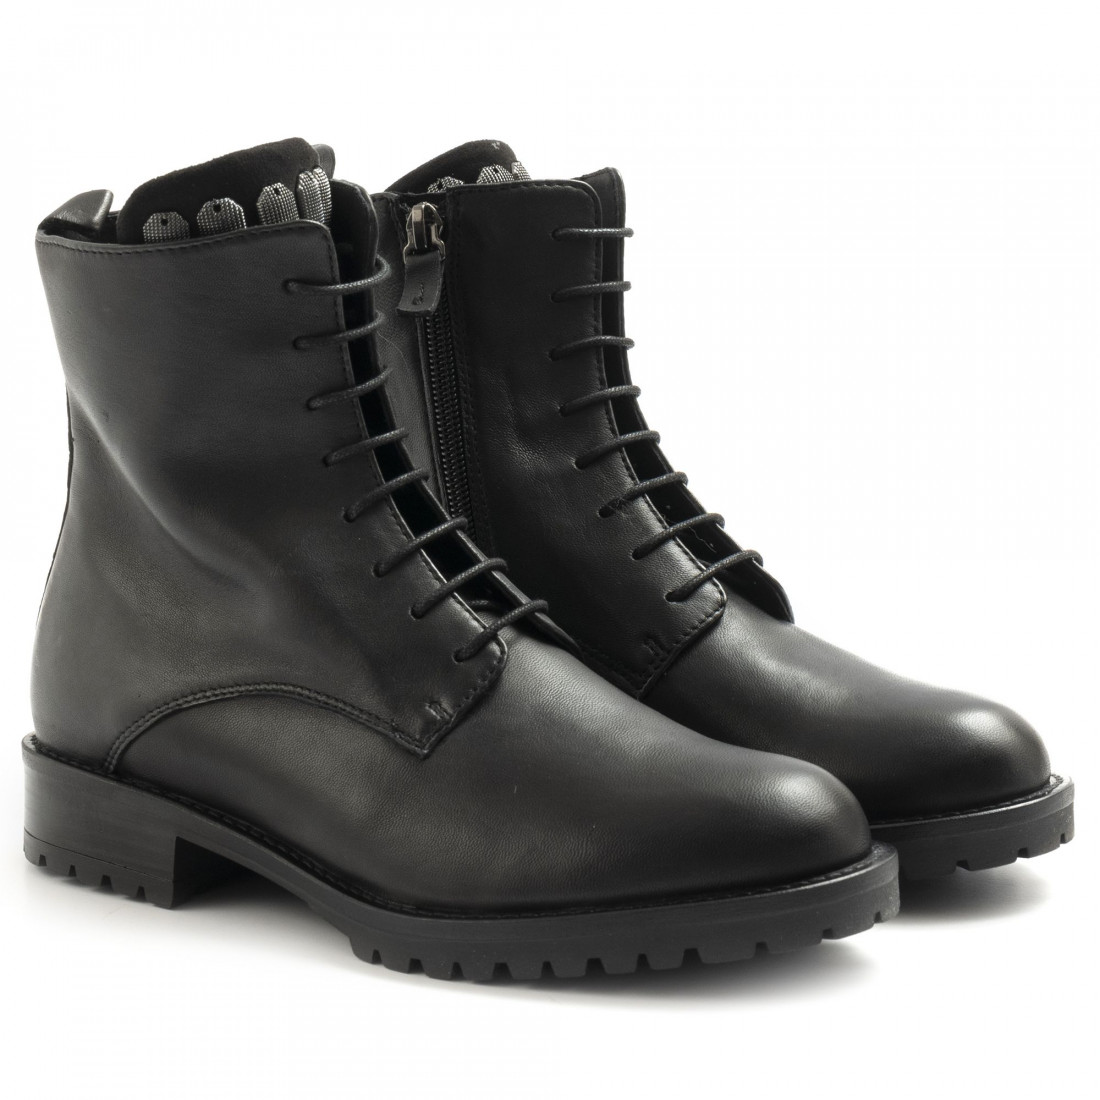 military boots woman tosca blu sf2023s456gerusalemme 7976